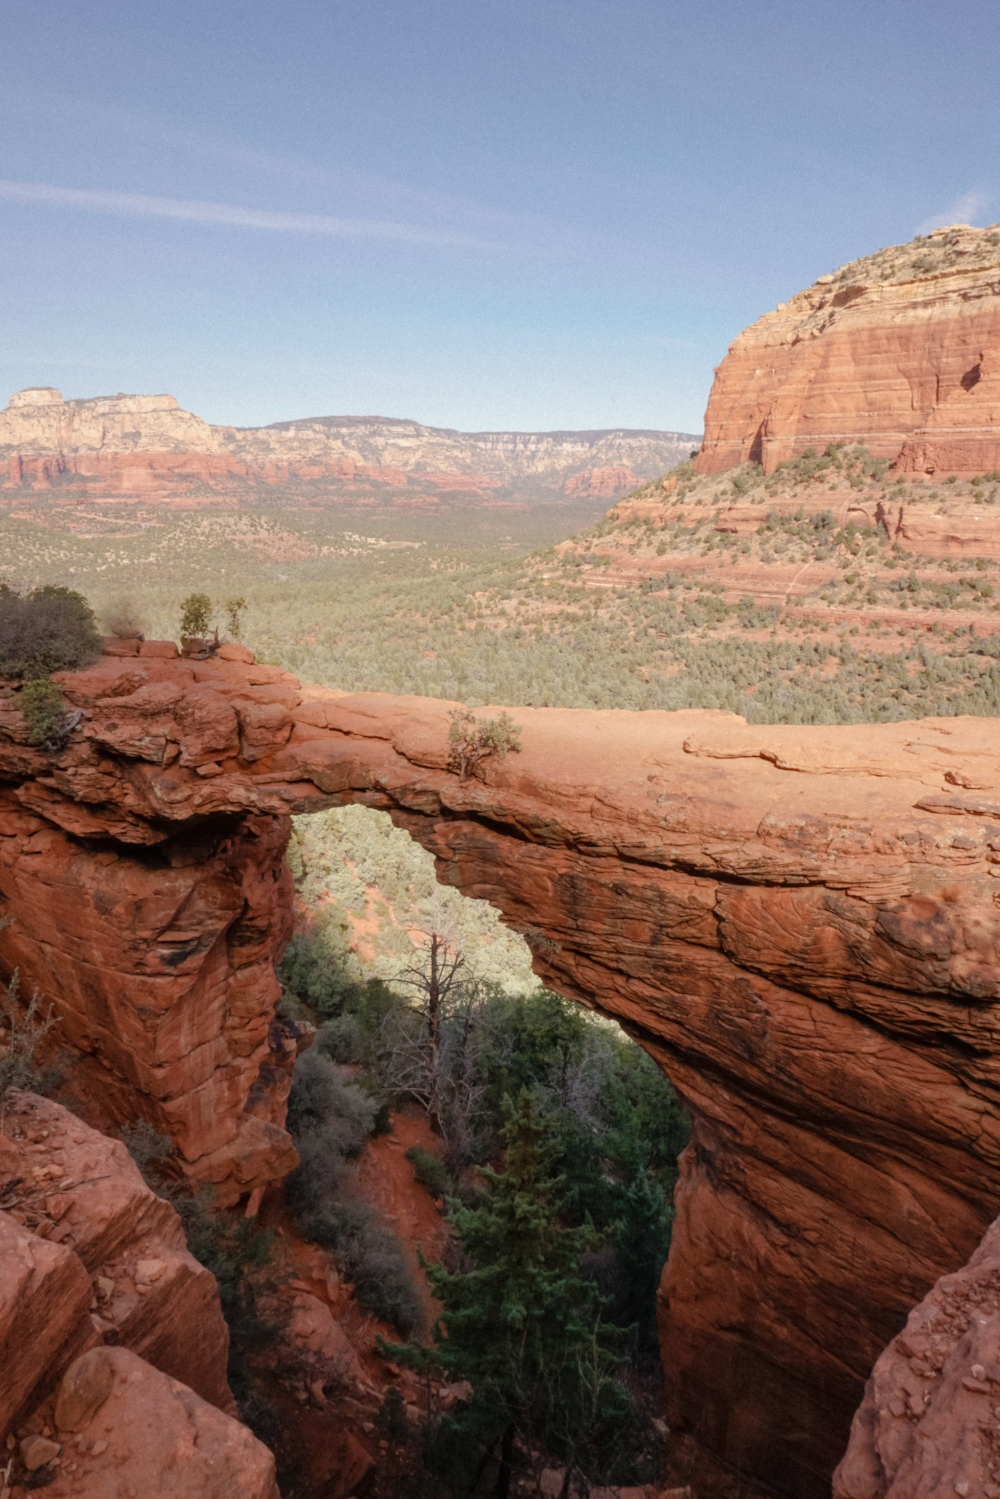 curio.trips.usa.arizona.sedona.devils.bridge.jpg